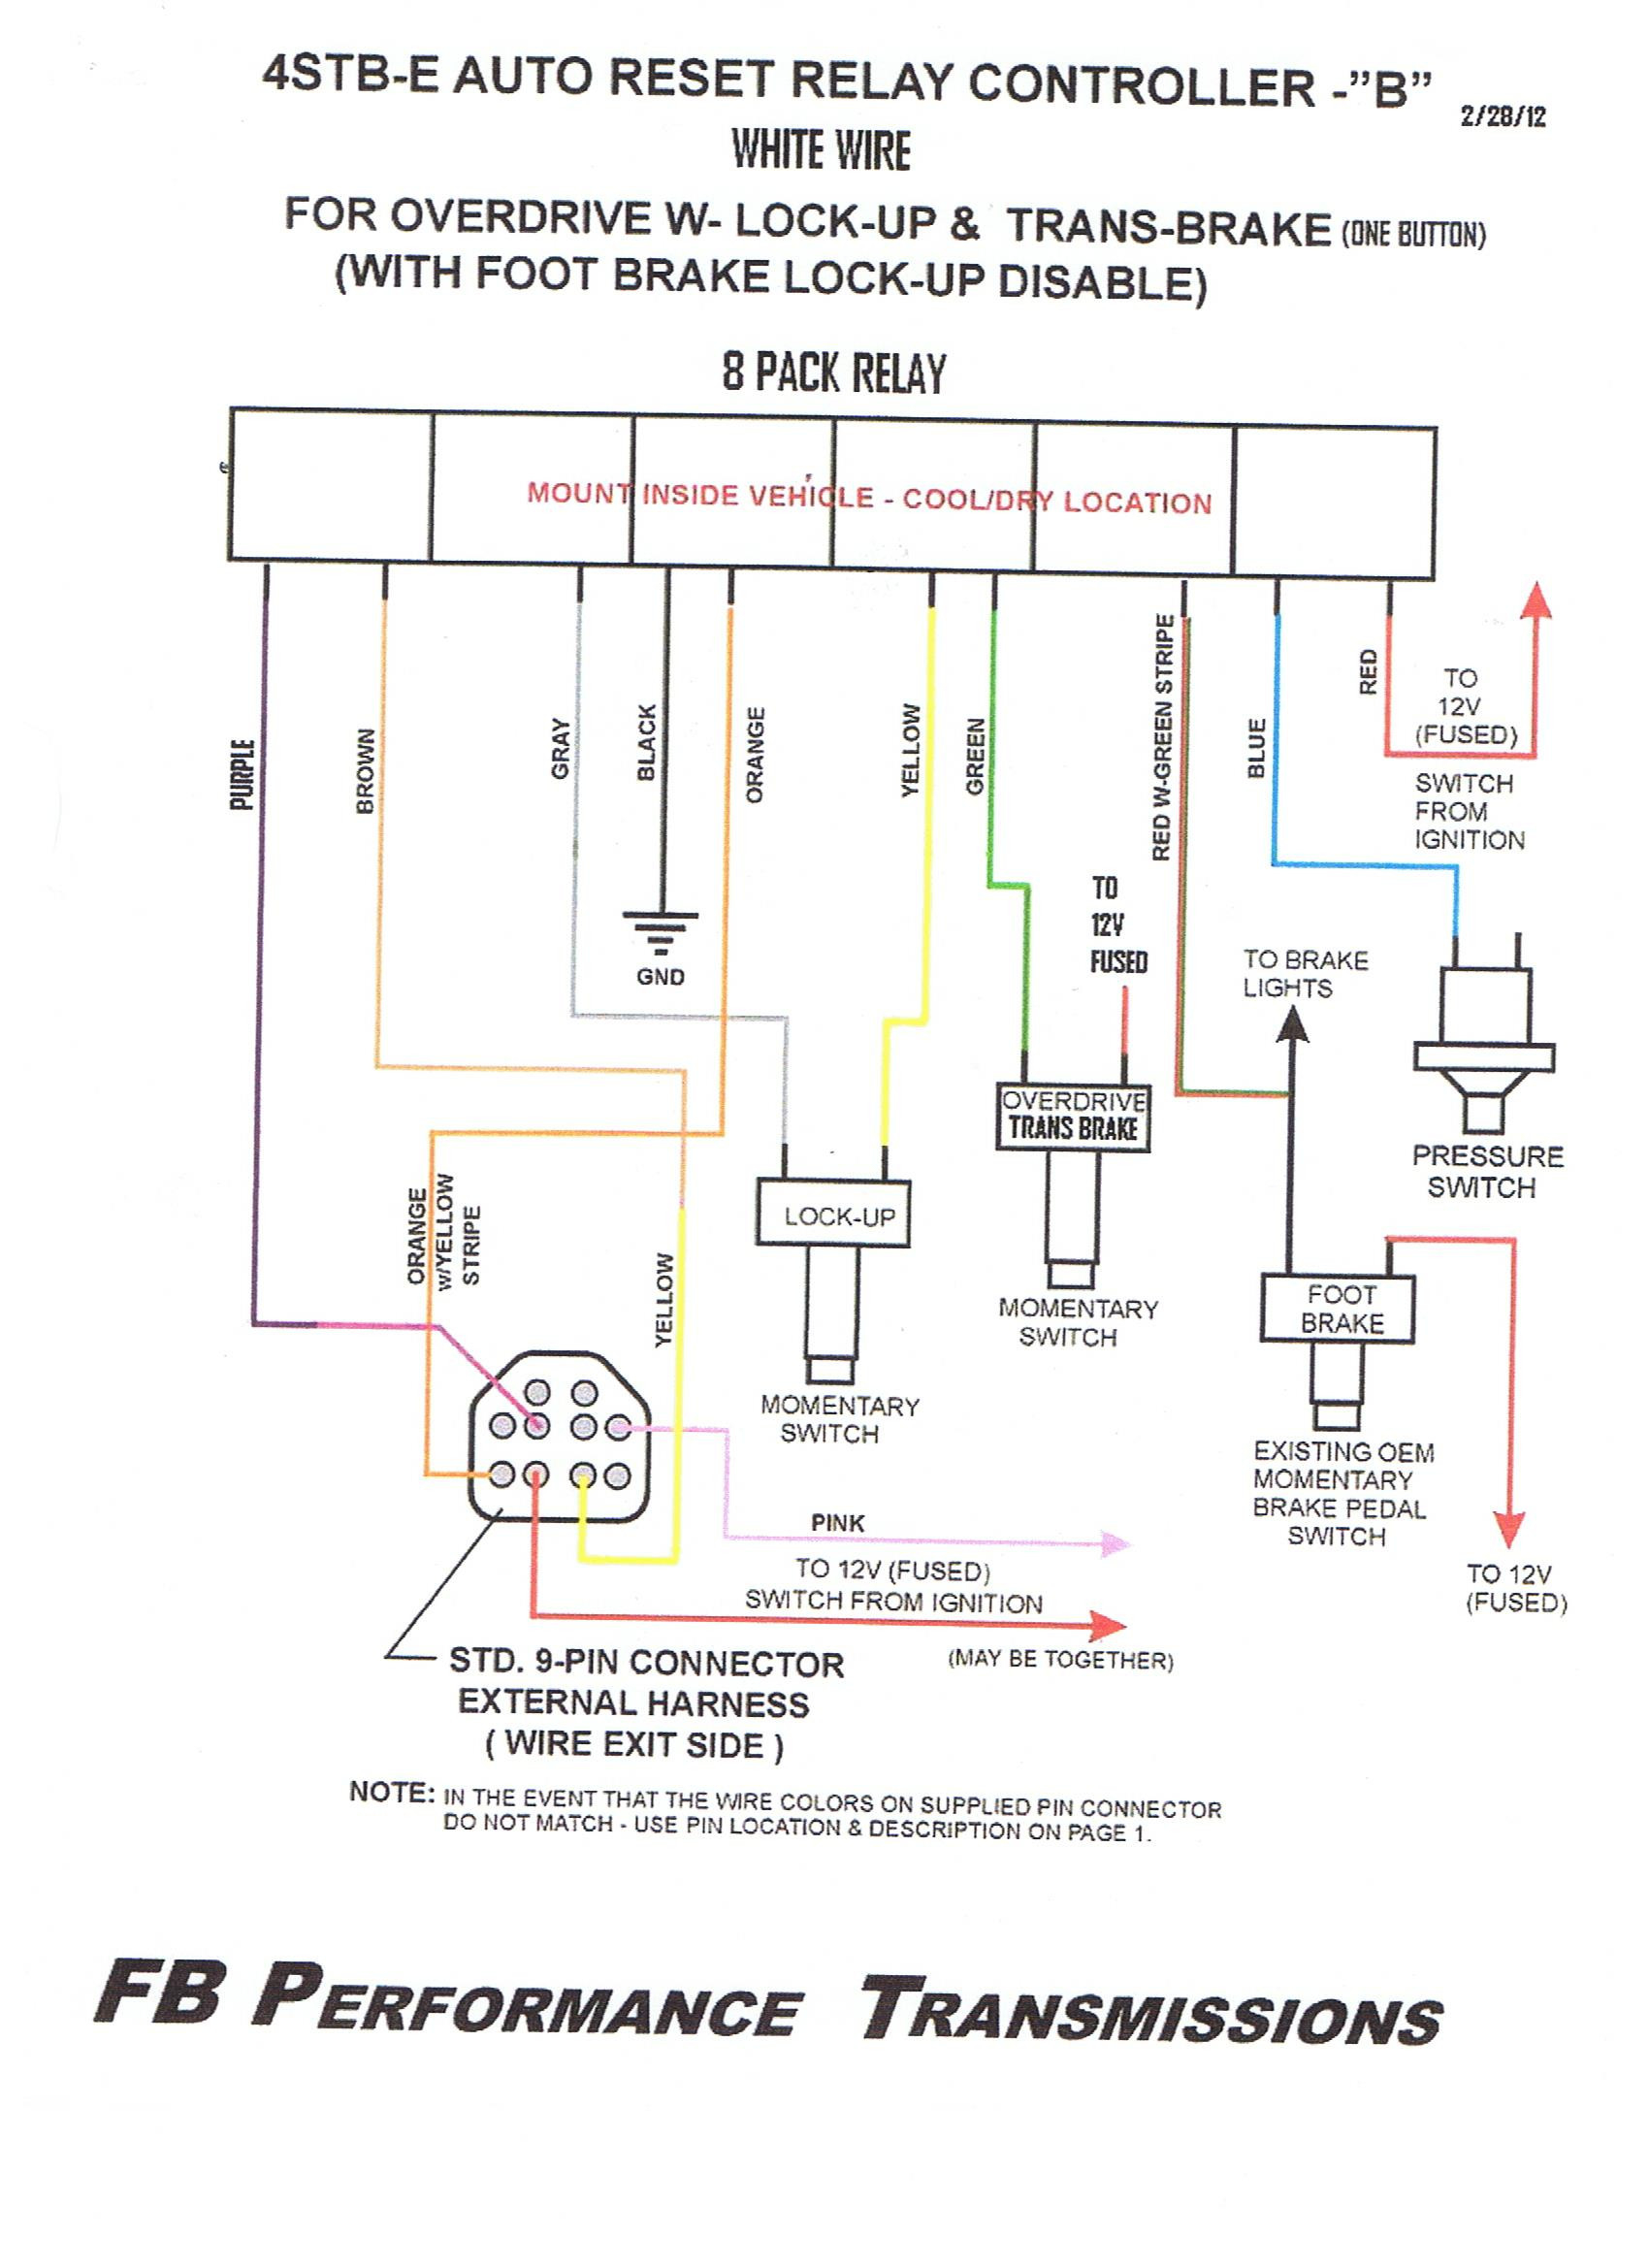 push button switch wiring diagram Collection-Wiring Diagram for Push button Start New Push button Switch Wiring Diagram 18-g